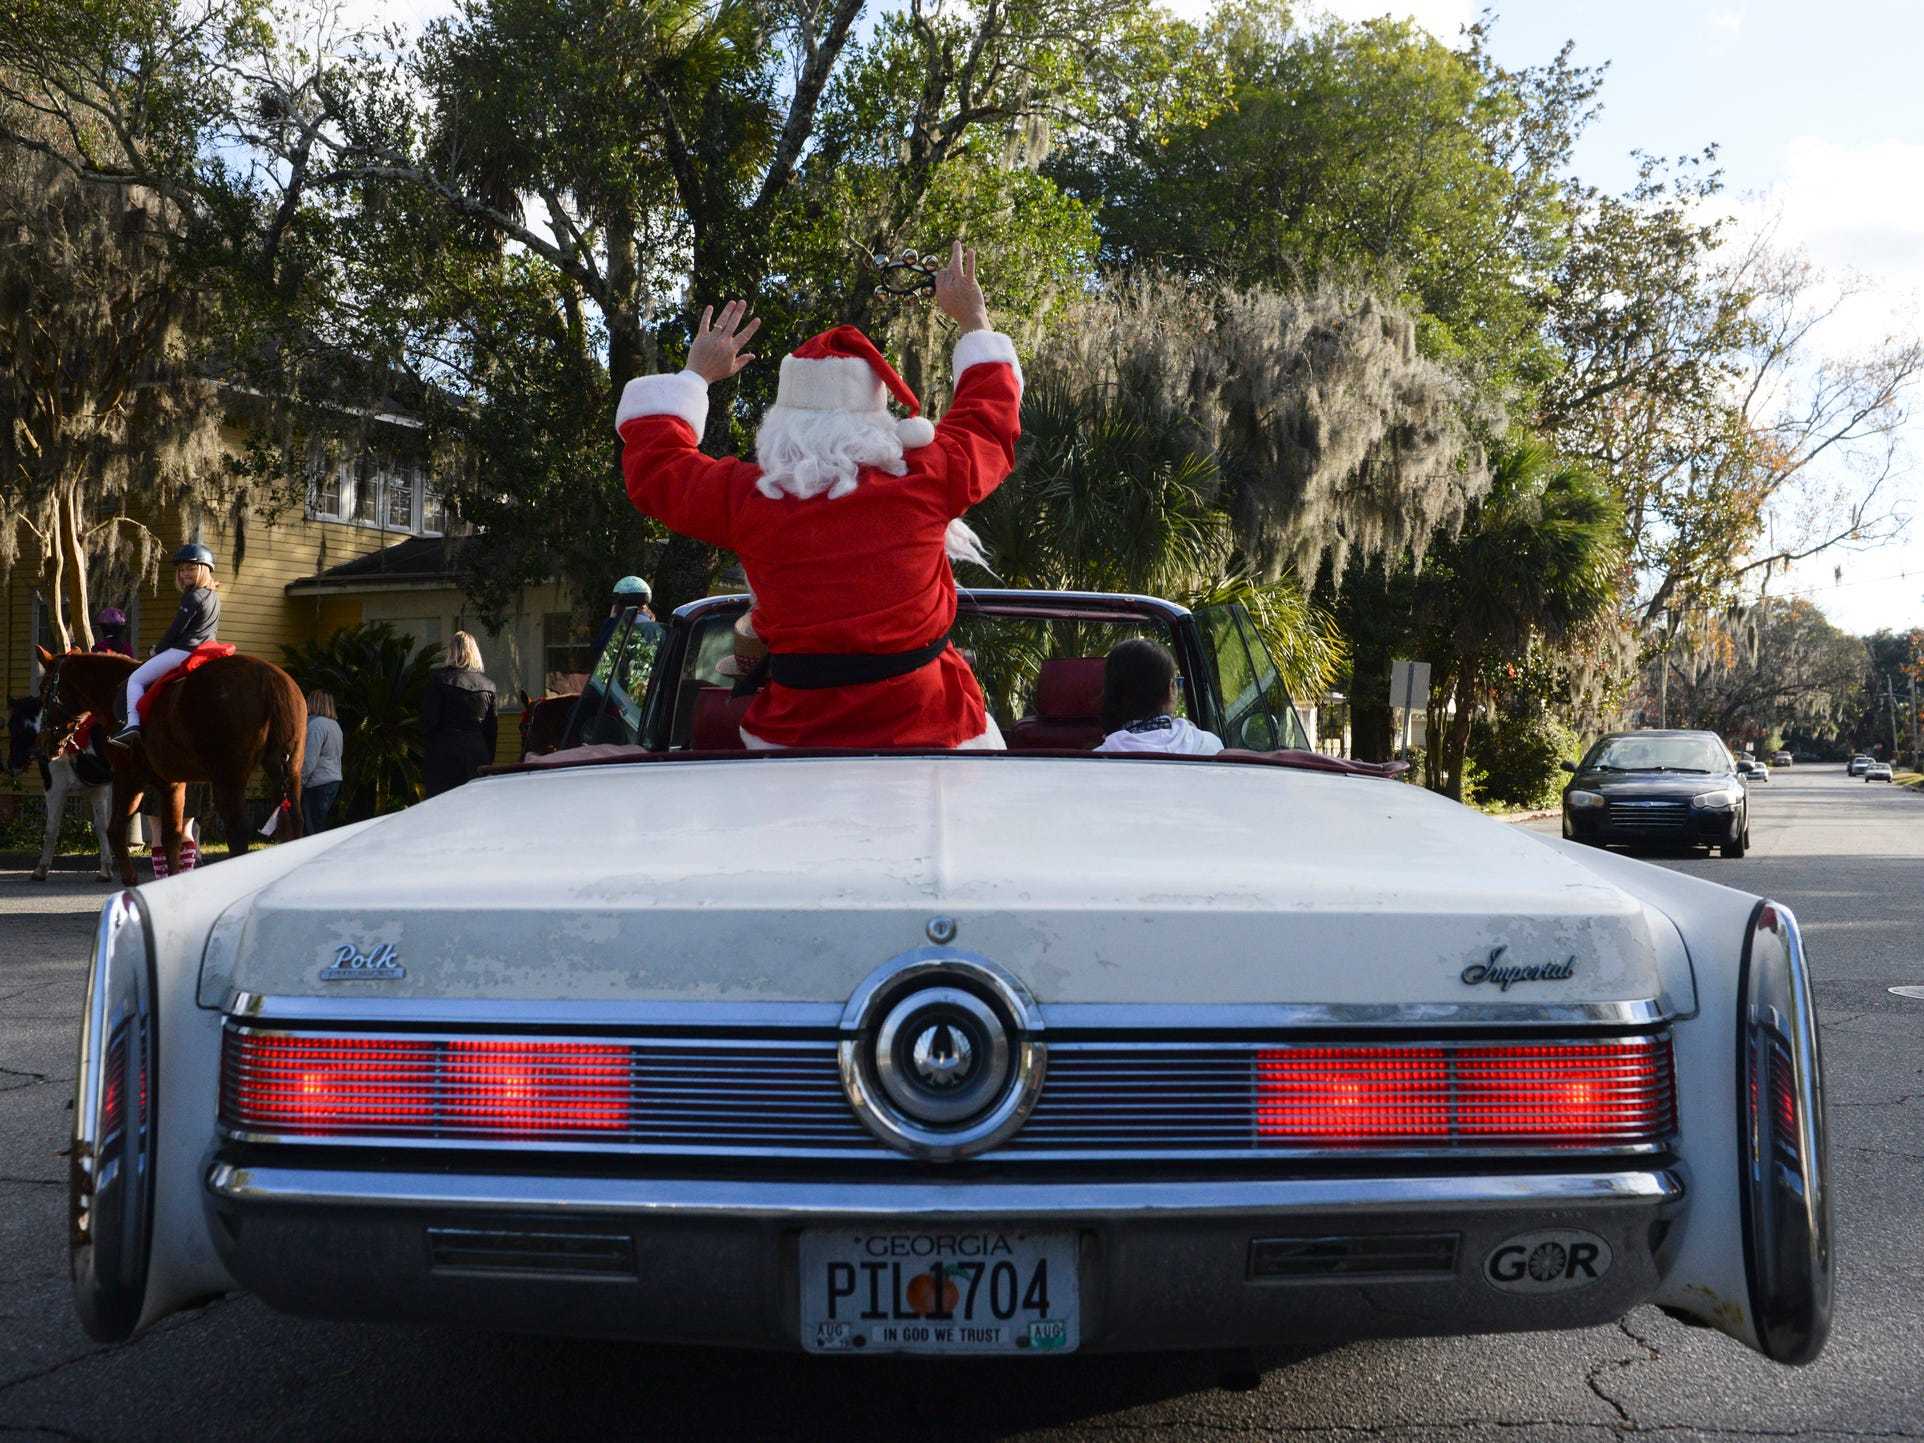 Santa Claus cruises down Georgia Avenue in his backup sleigh, a Chrysler Imperial, during the Avondale Christmas Parade on Sunday, Dec. 16, 2018.